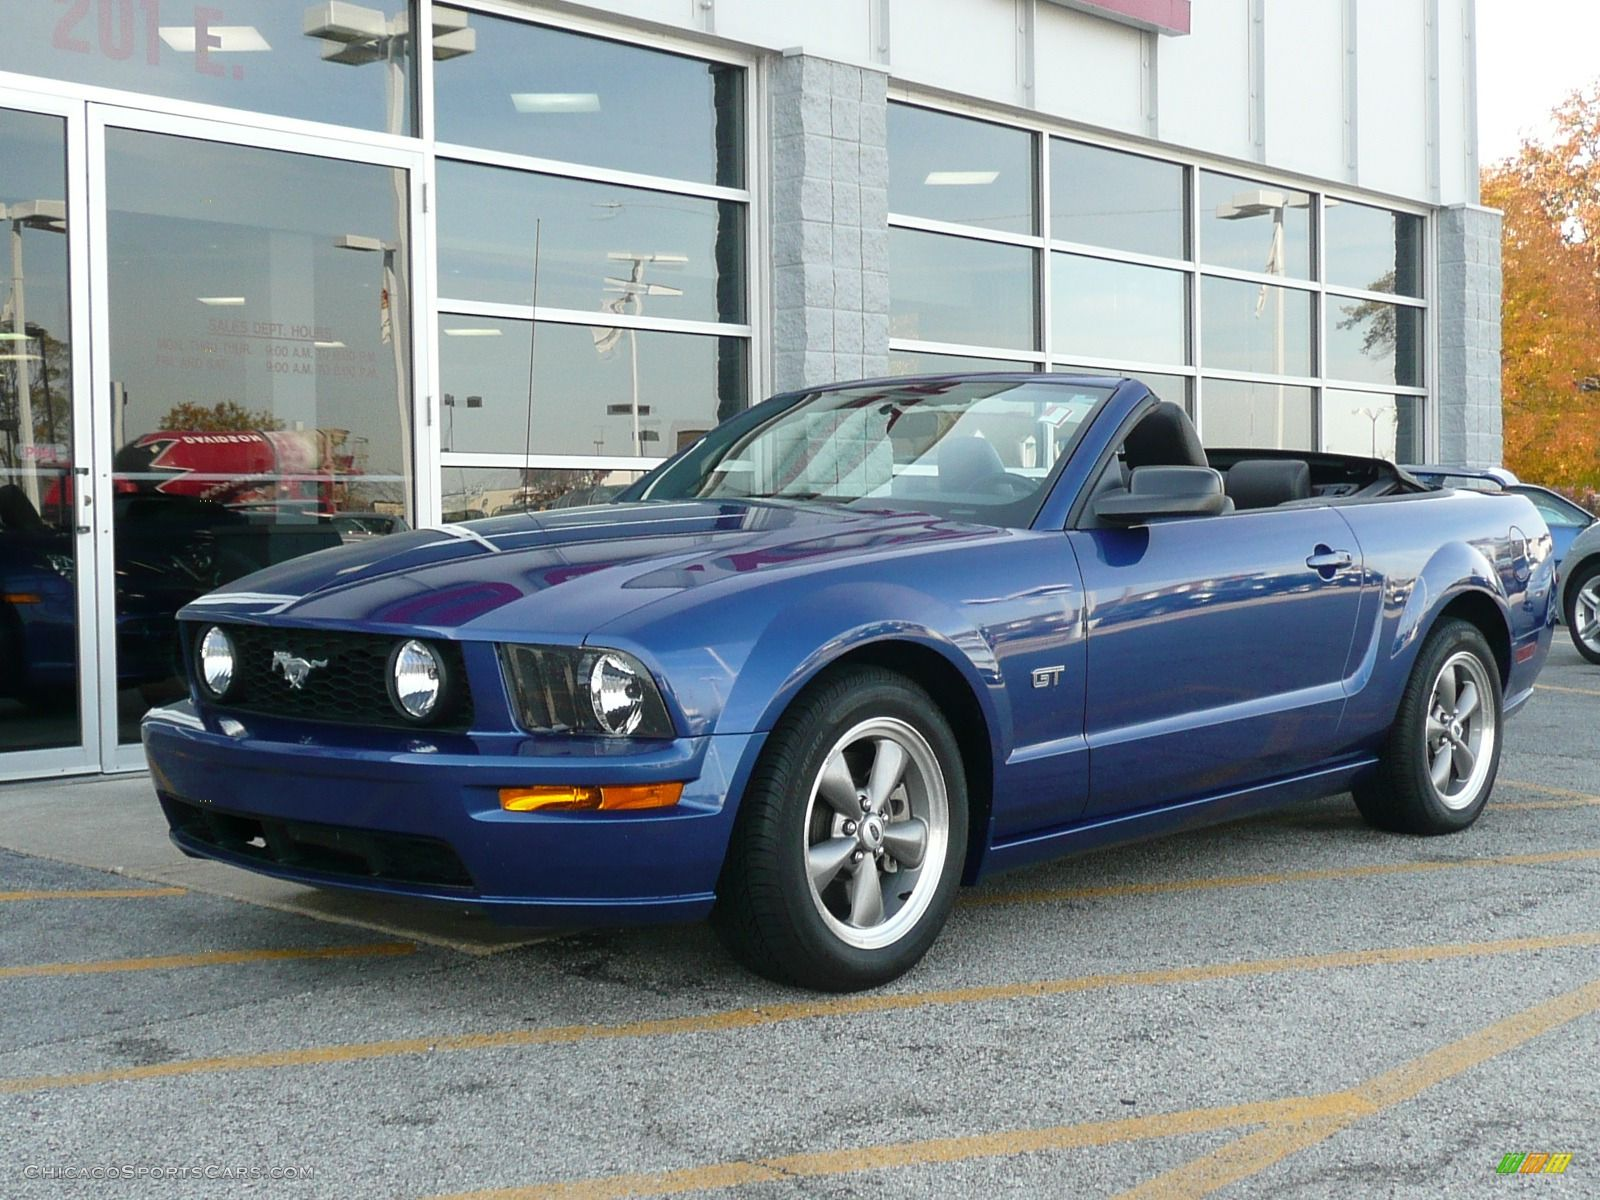 2006 Ford Mustang Gt Convertible 2006 Ford Mustang Ford Mustang Gt Ford Mustang